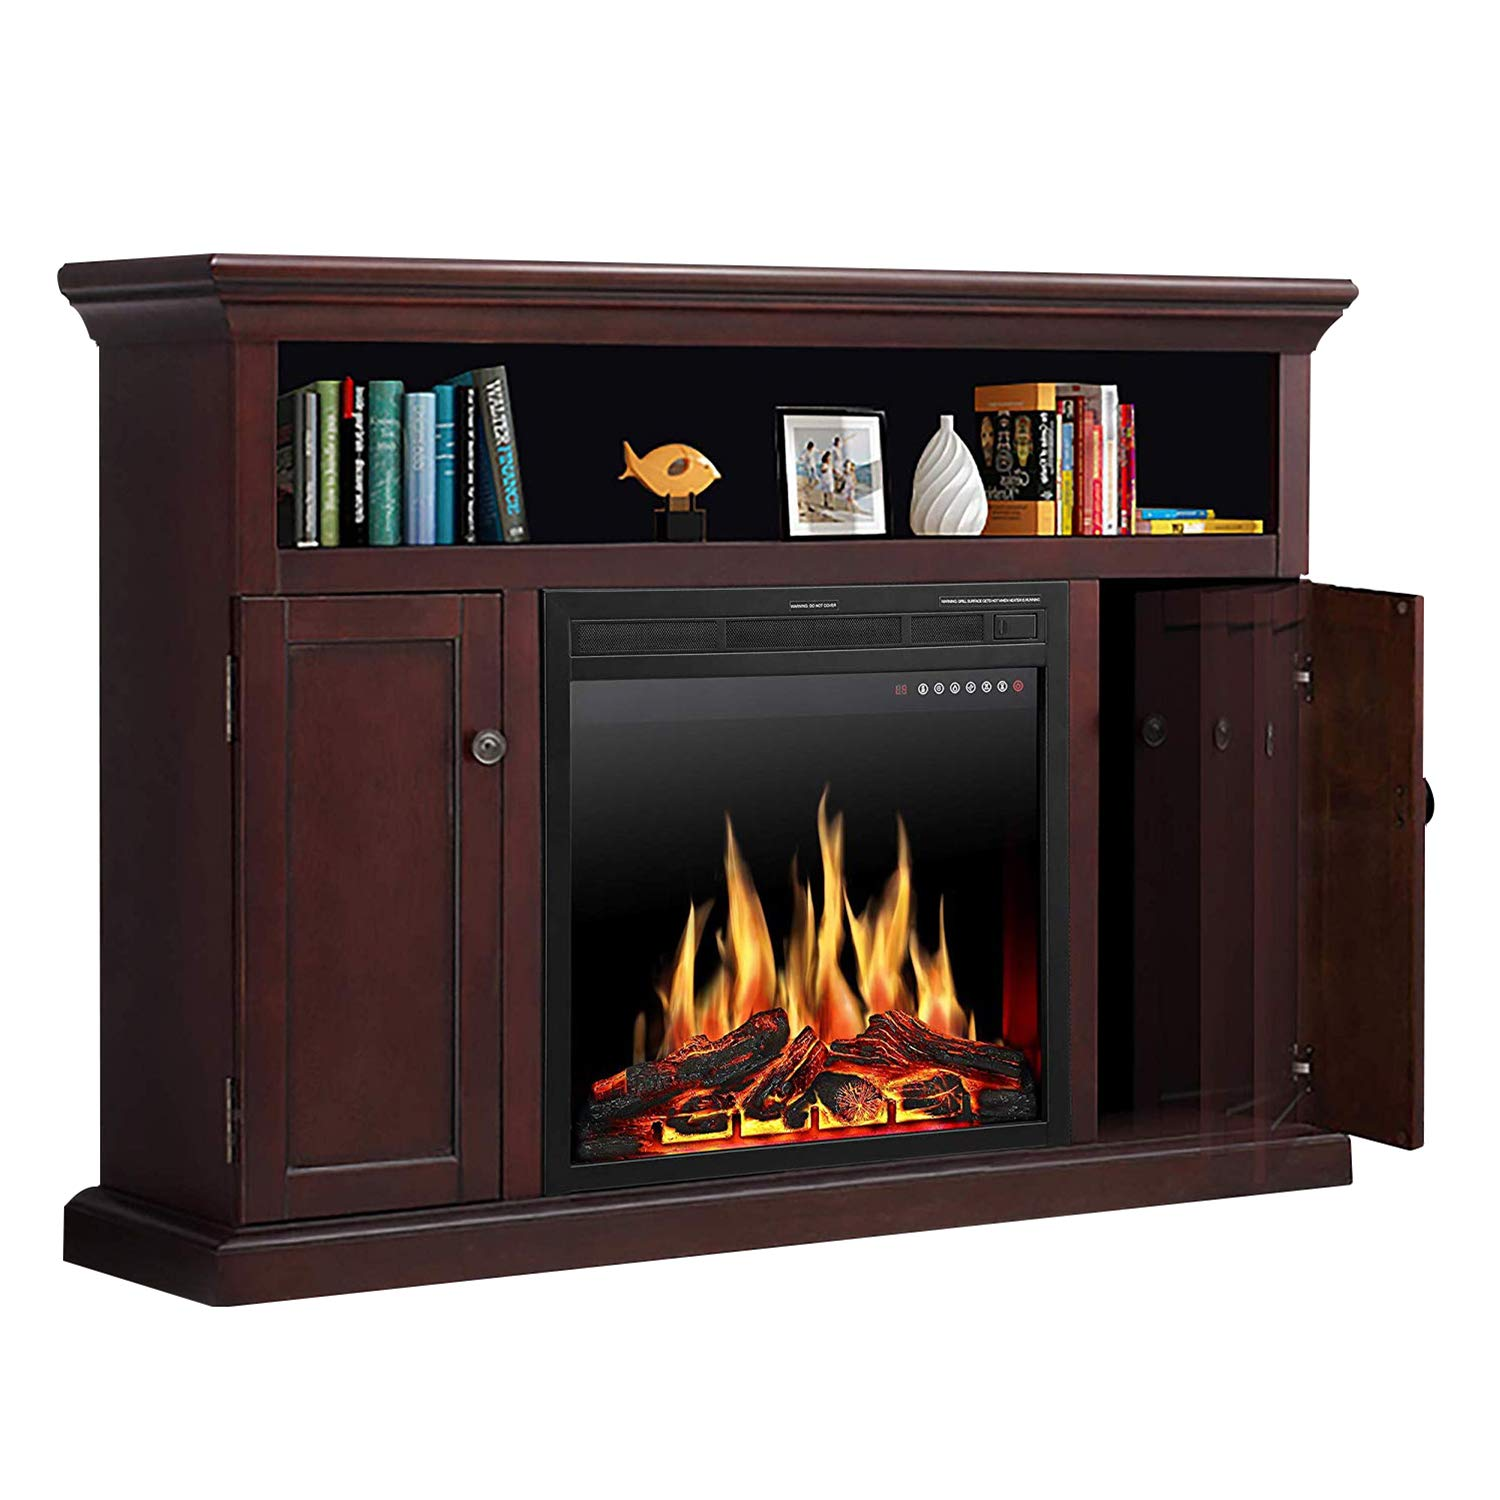 """JAMFLY Wood Electric Fireplace Mantel TV Stand Package up to 55"""" TV, Media Fireplace Console with Remote Control, LED Touch Screen and Multicolor Flames 750/1500W Dark Espresso Finish"""